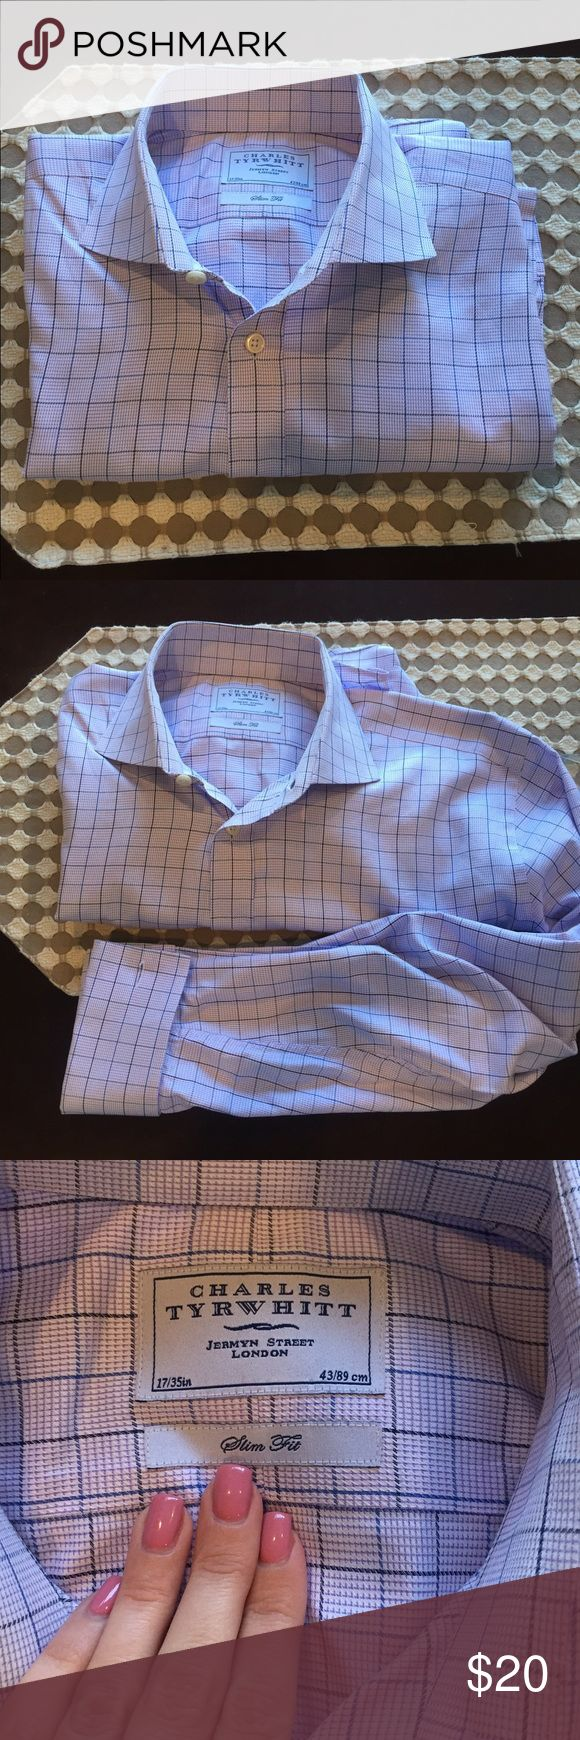 Men's Charles Tyrwhitt French Cuff Shirt Excellent condition Men's French cuff dress shirt 17in neck 35in charles tyrwhitt Shirts Dress Shirts